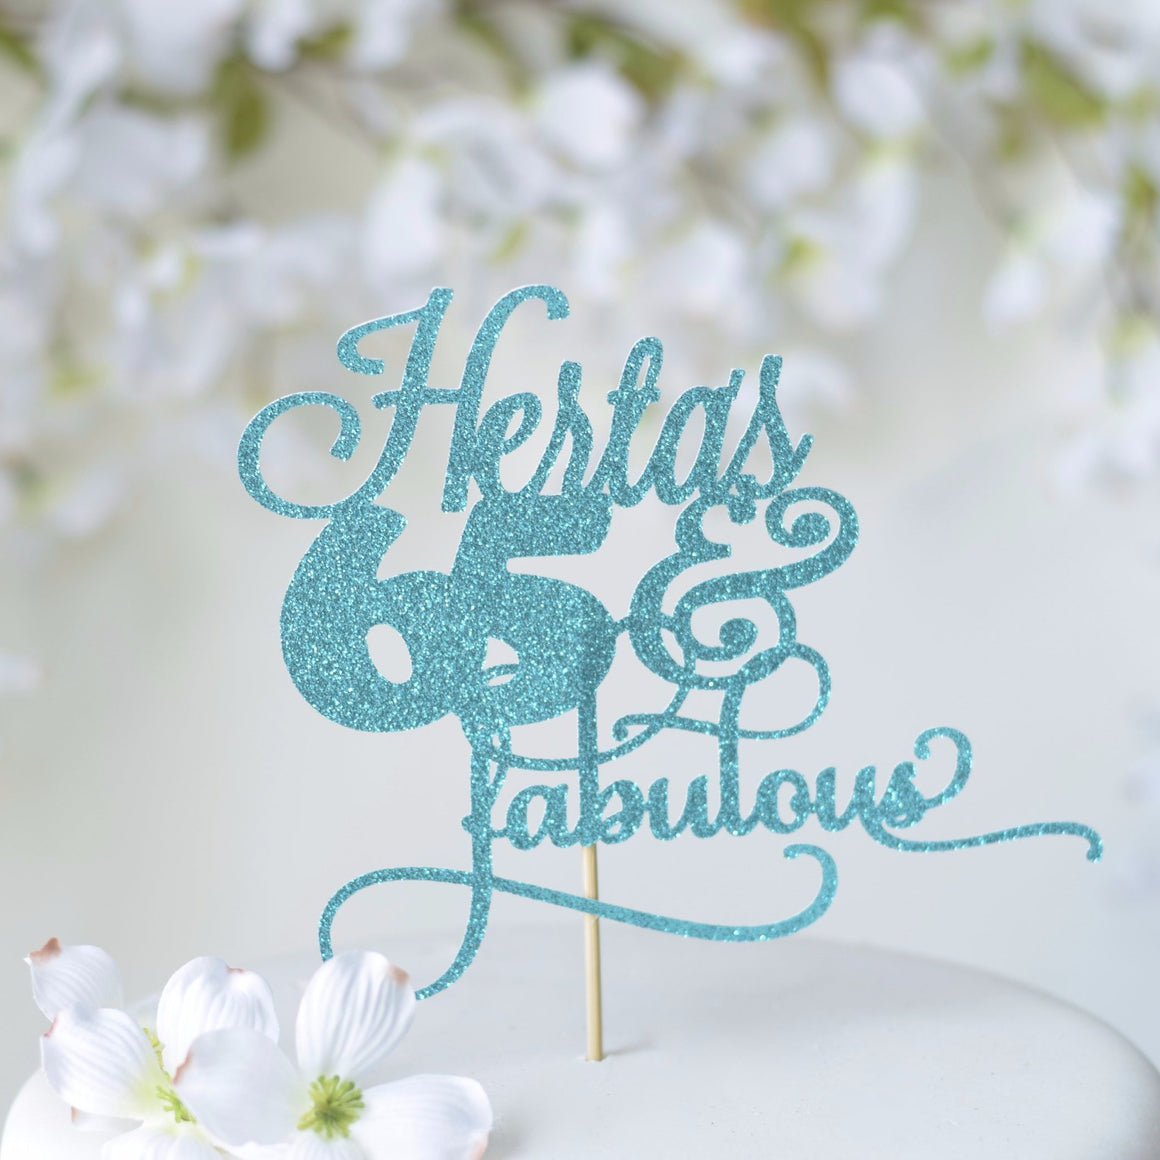 Herta's 65 & Fabulous blue and teal cake topper